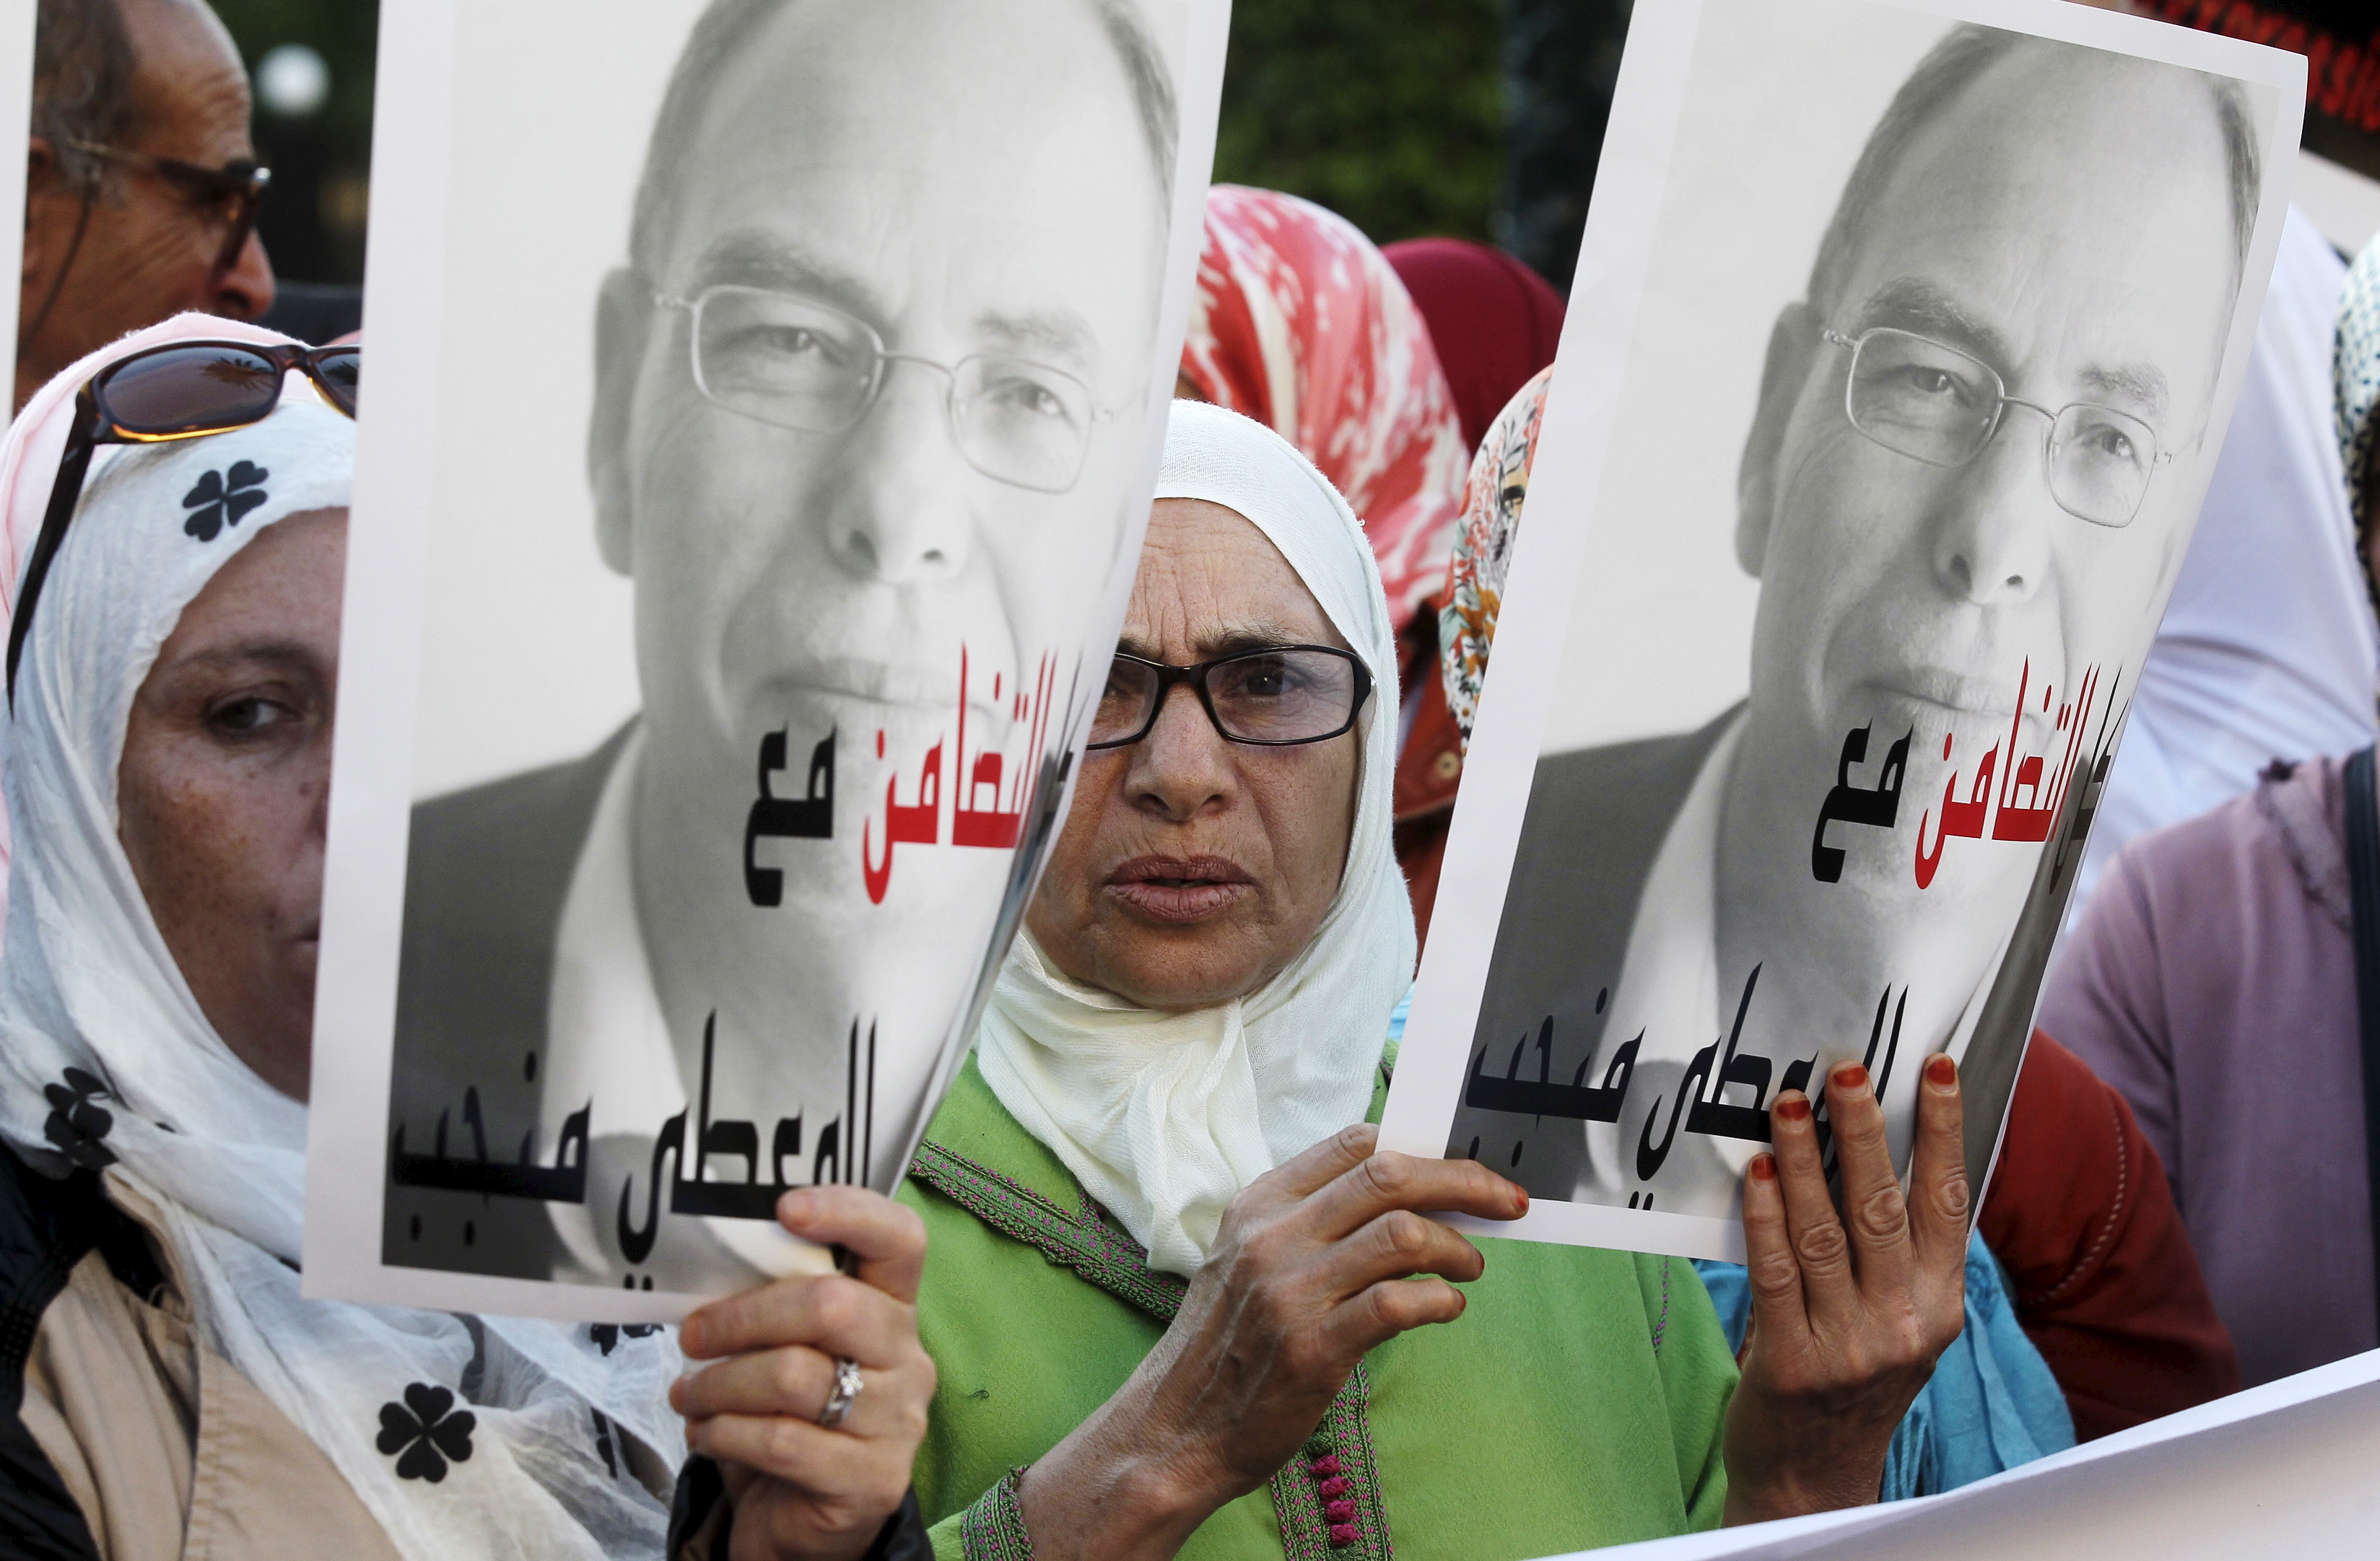 The arrest of Maati Monjib and the continued retreat of human rights in Morocco